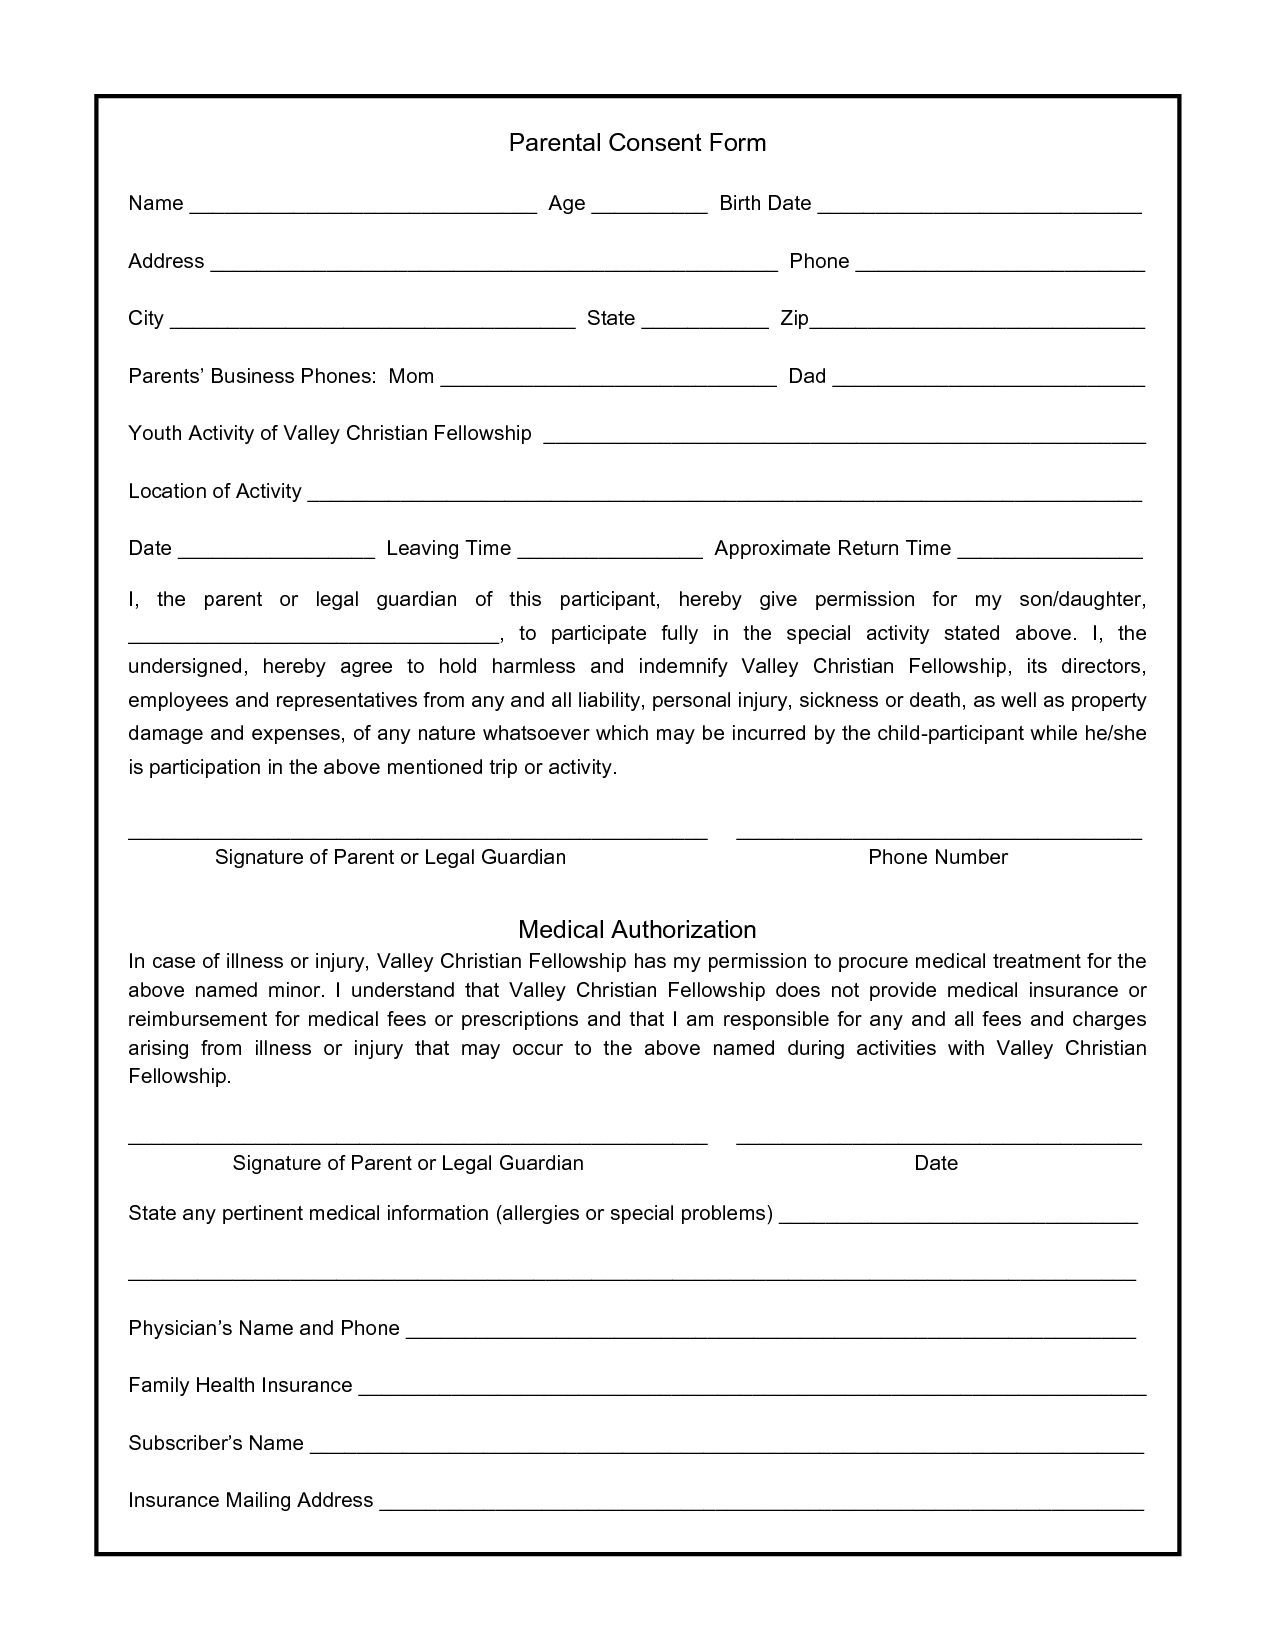 Parental consent form for photos swifter parental consent parental consent form for photos swifter parental consent form for medical treatment thecheapjerseys Images